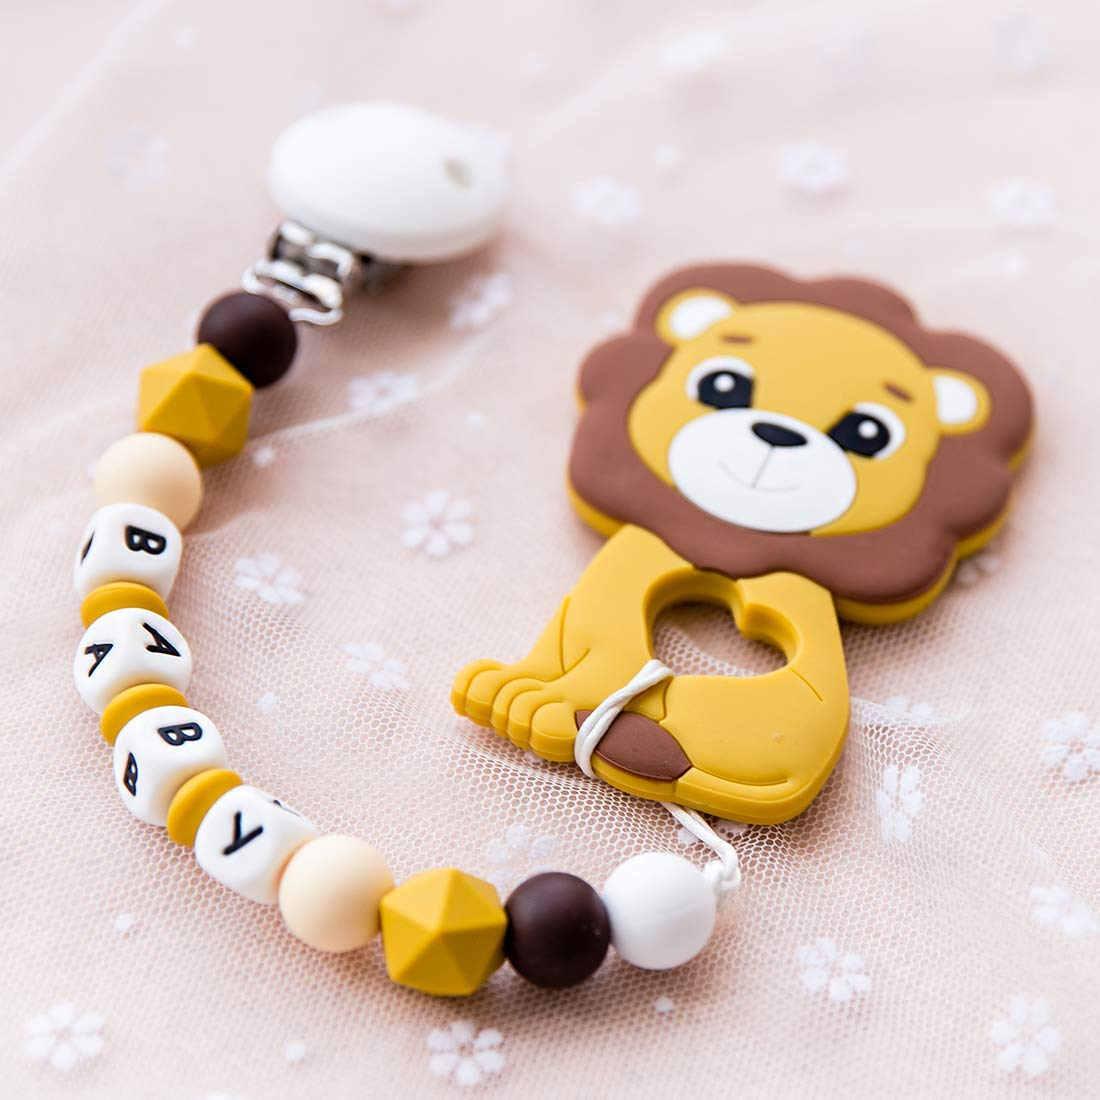 Silicone Pacifier Clip Boy,Cute Loin Animal Teether Toys Silicone Teething Beads,Infant Teething Relief Shower Gift